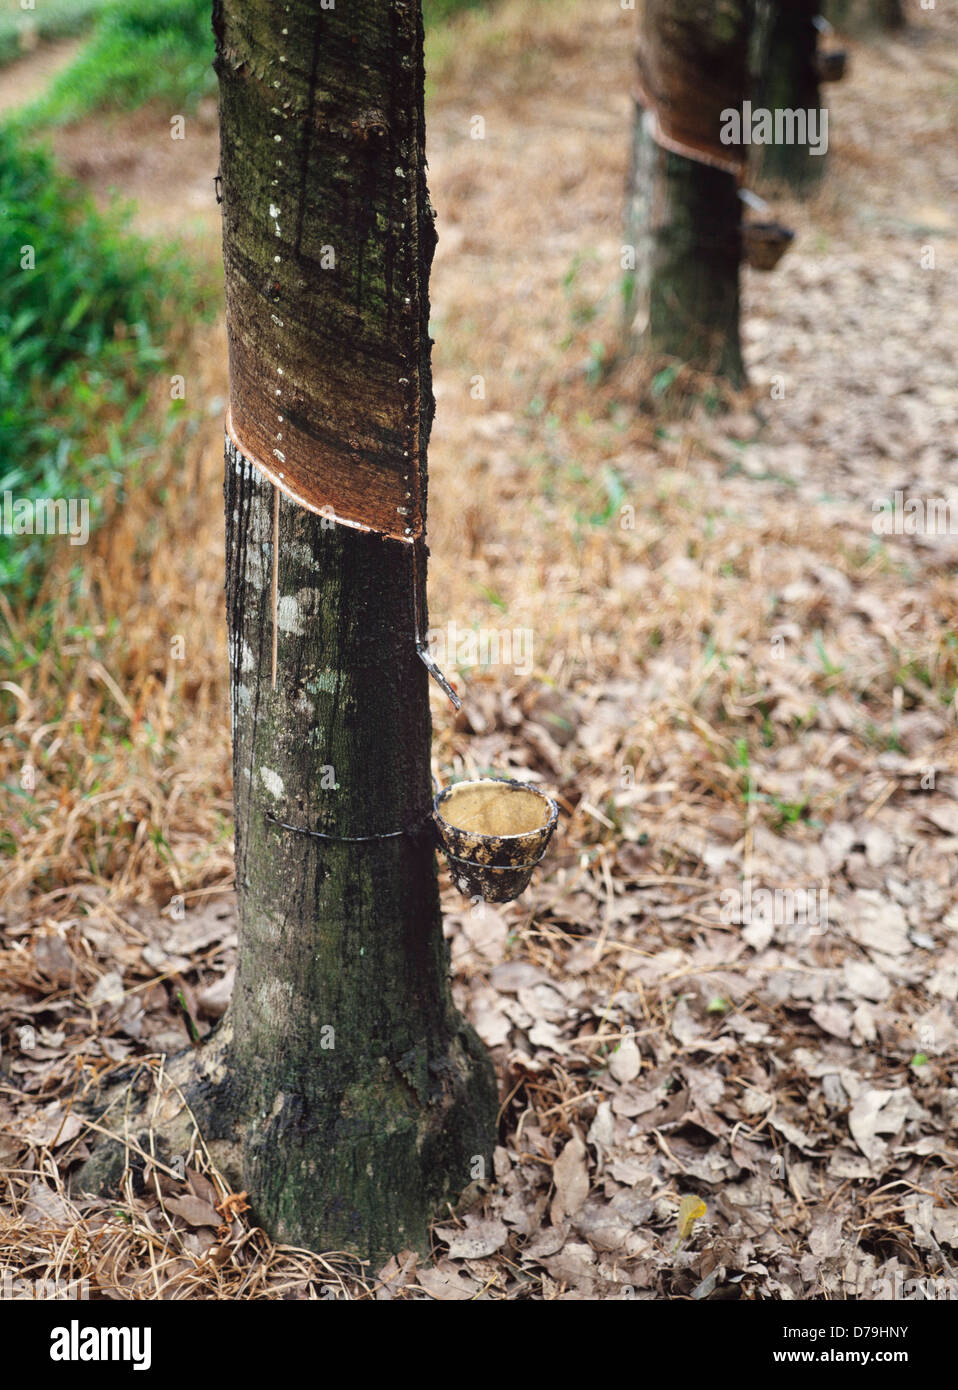 Rubber tapping, liquid latex extraction, Malaysia - Stock Image